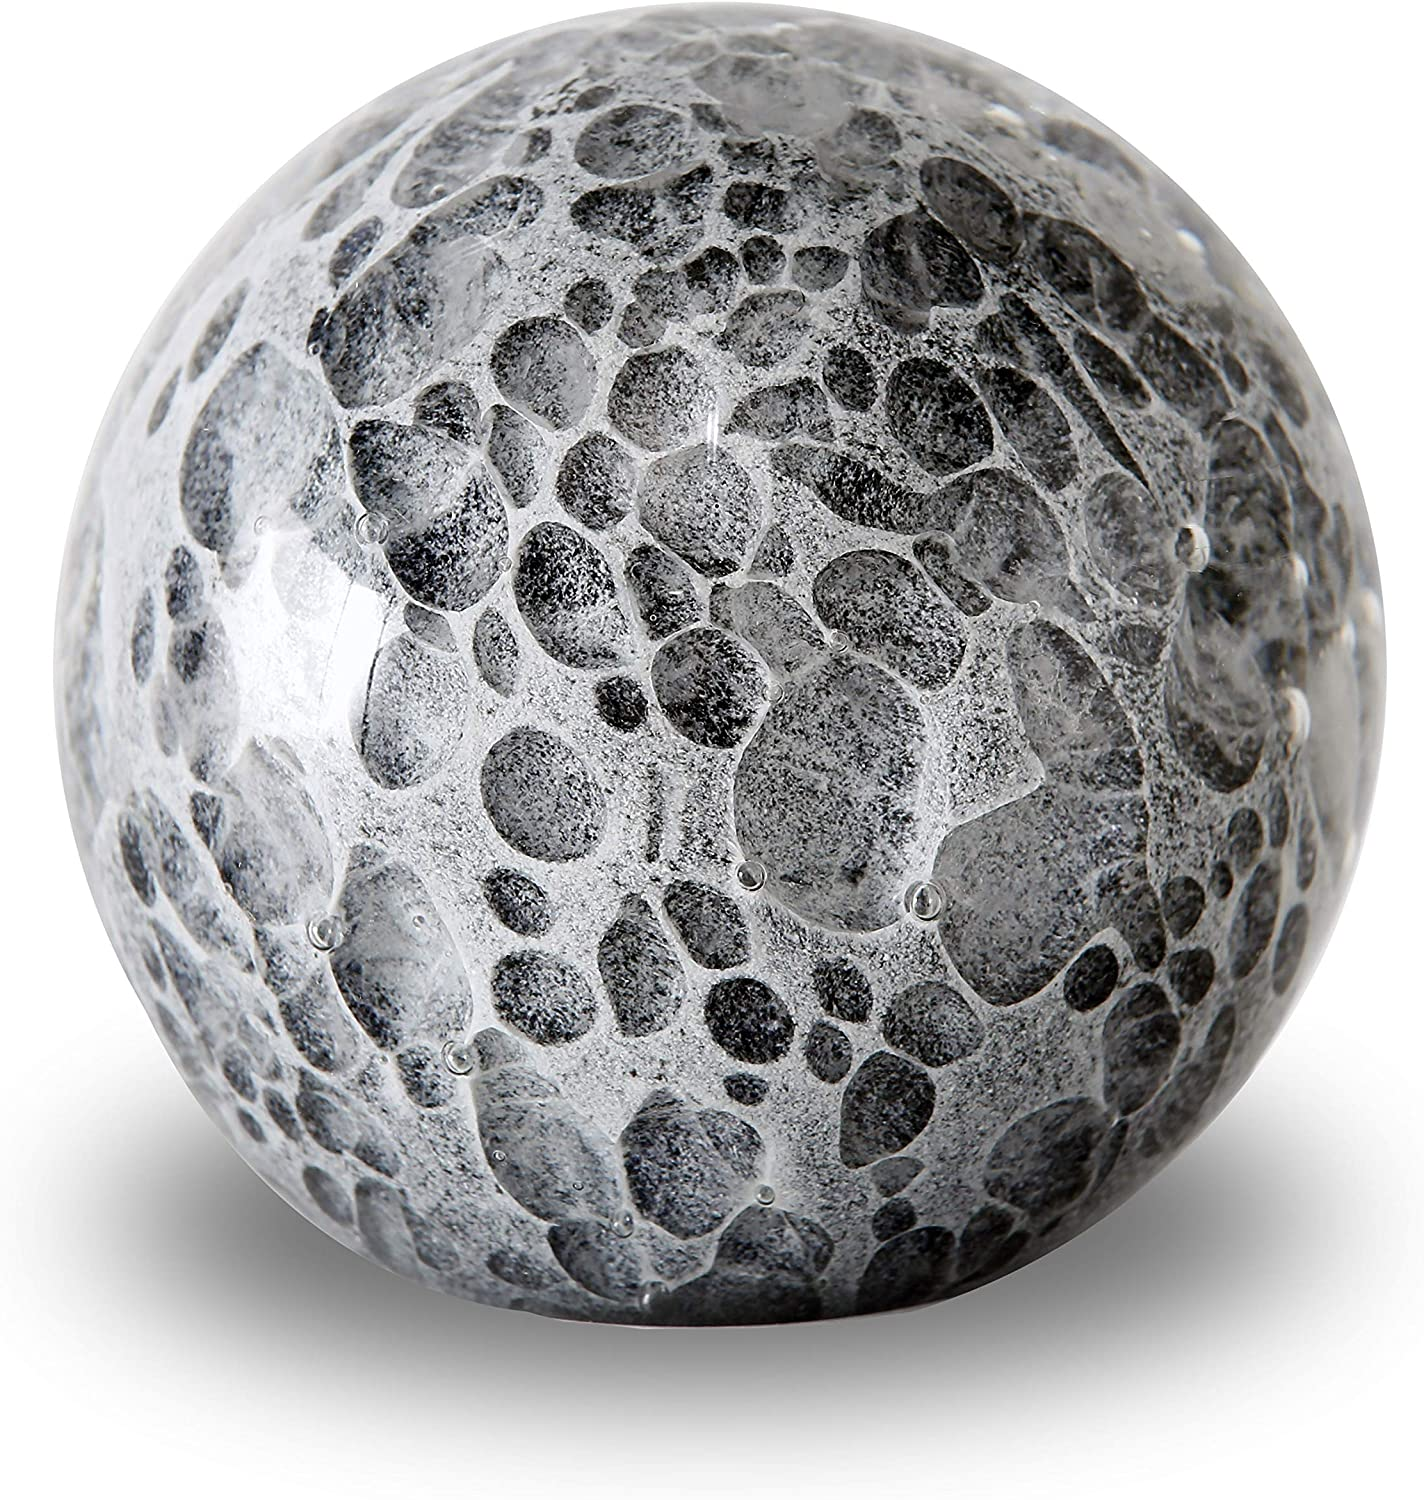 WHW Whole House Worlds Bubble Fusion Ball Paperweight, Black, Gray and White, Hand Crafted Art Glass Orb, 3 1/4 Inches Diameter Ball, No Roll Flat Bottom (8 D cm)